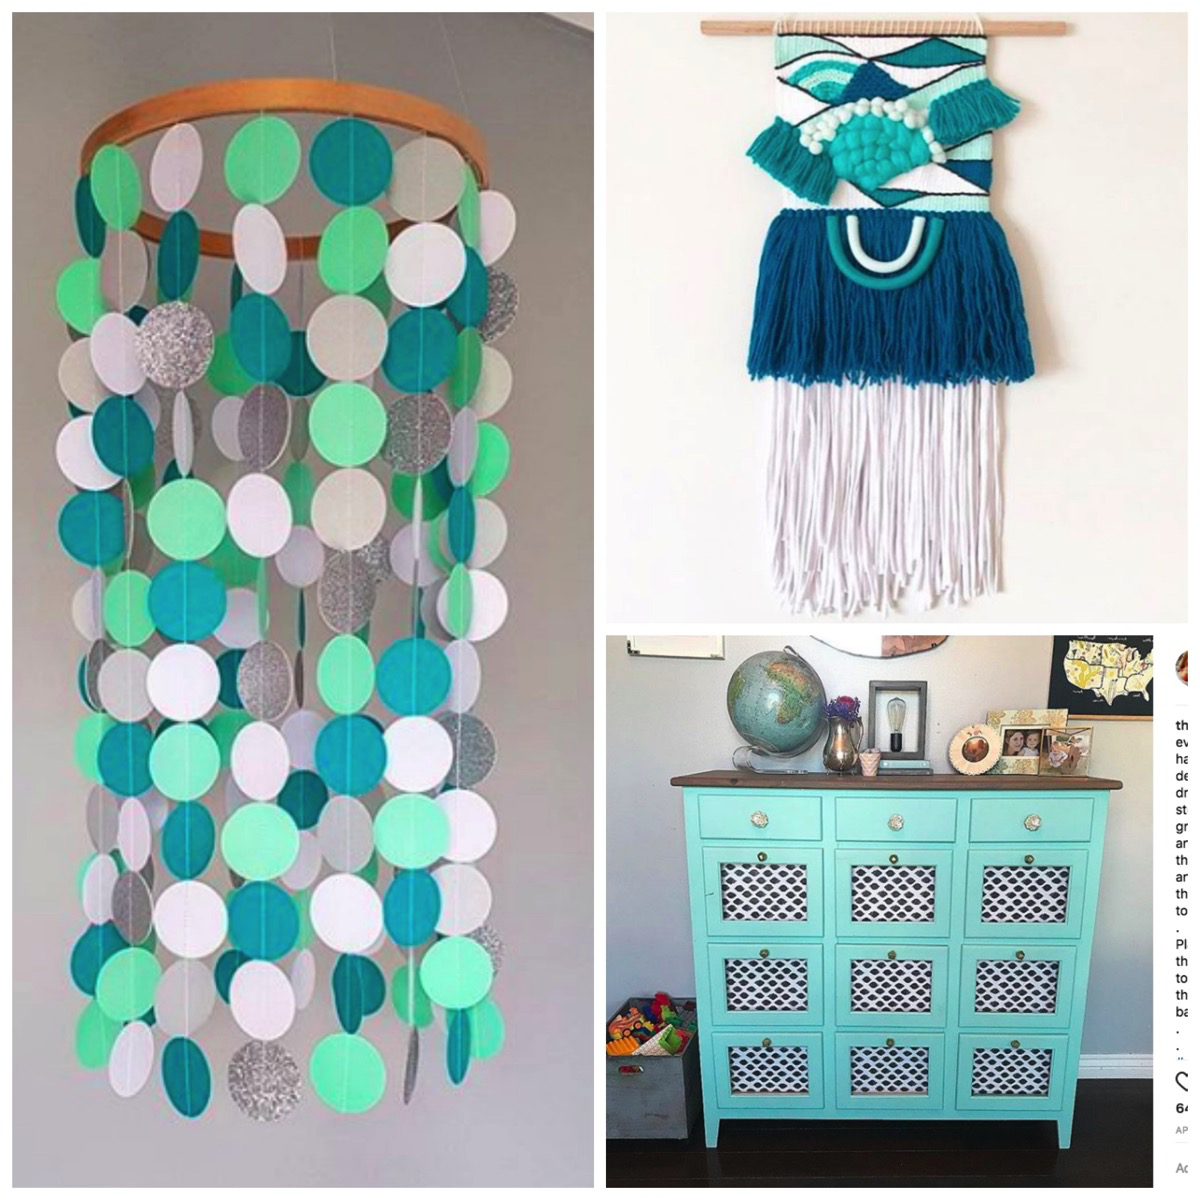 Colorful Home: Inspirational Ways To Add The Color Teal To Your Home